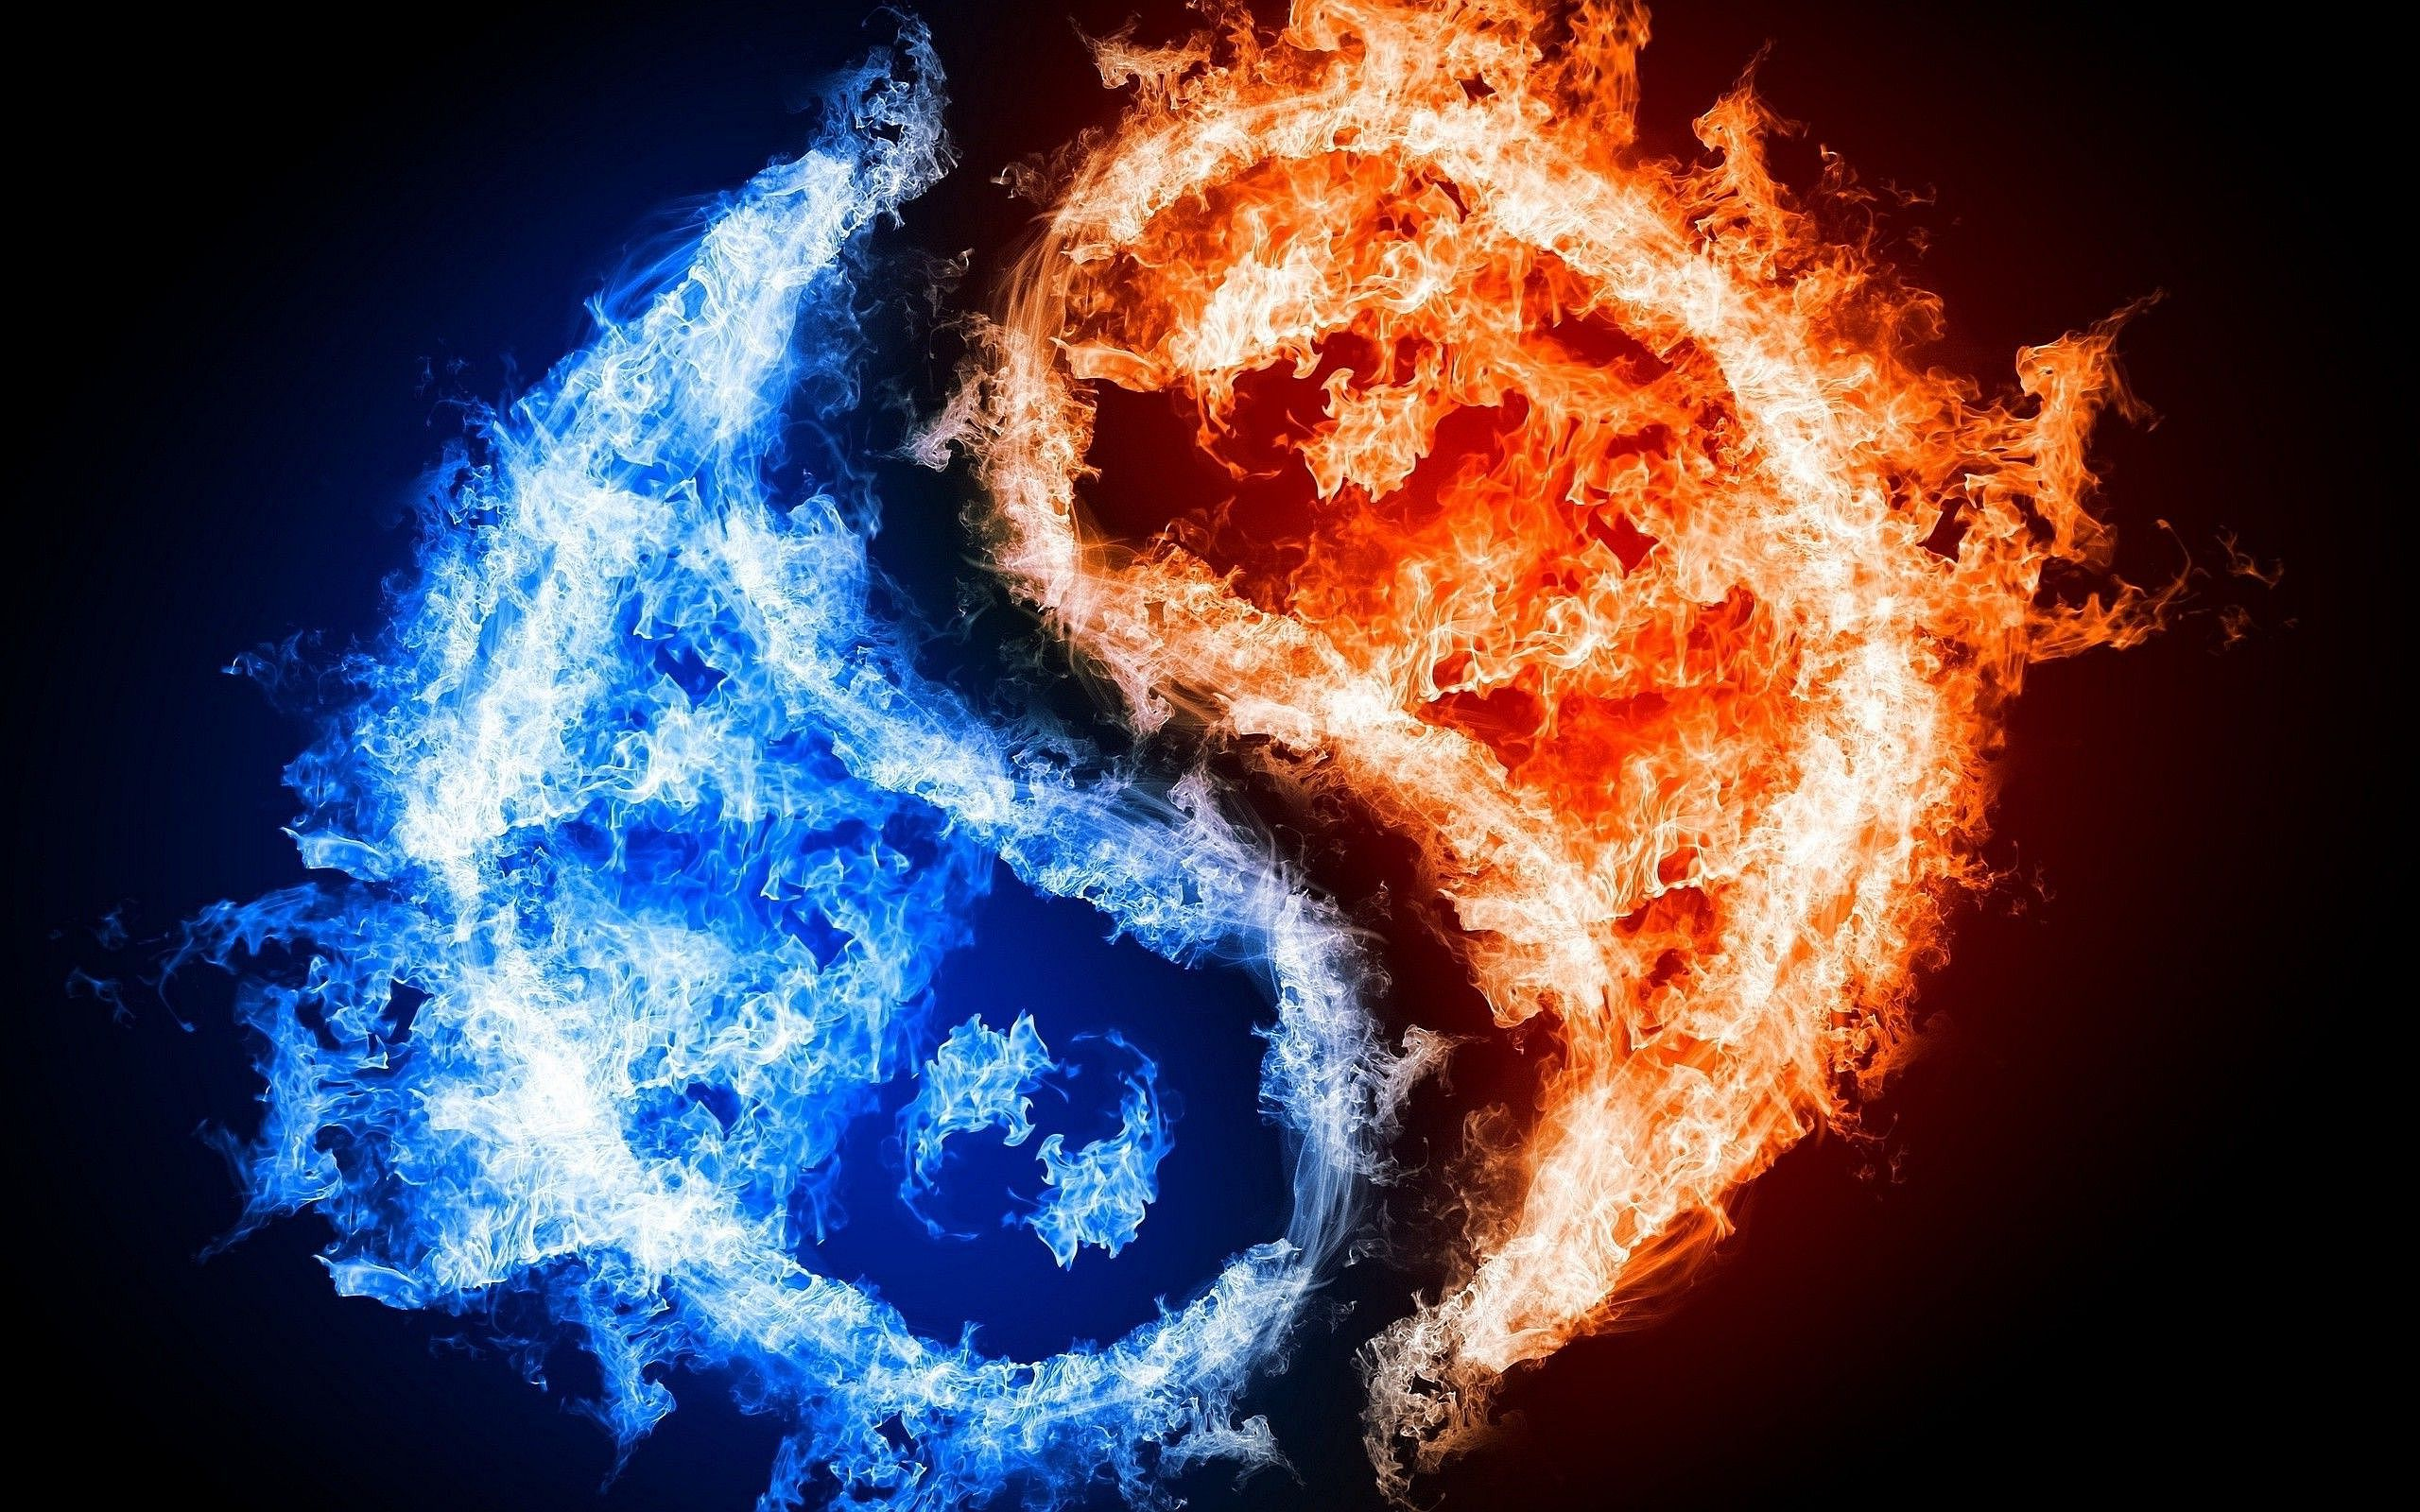 Yin Yang Fire Ice Fire And Ice Twin Flame Fire And Ice Wallpaper